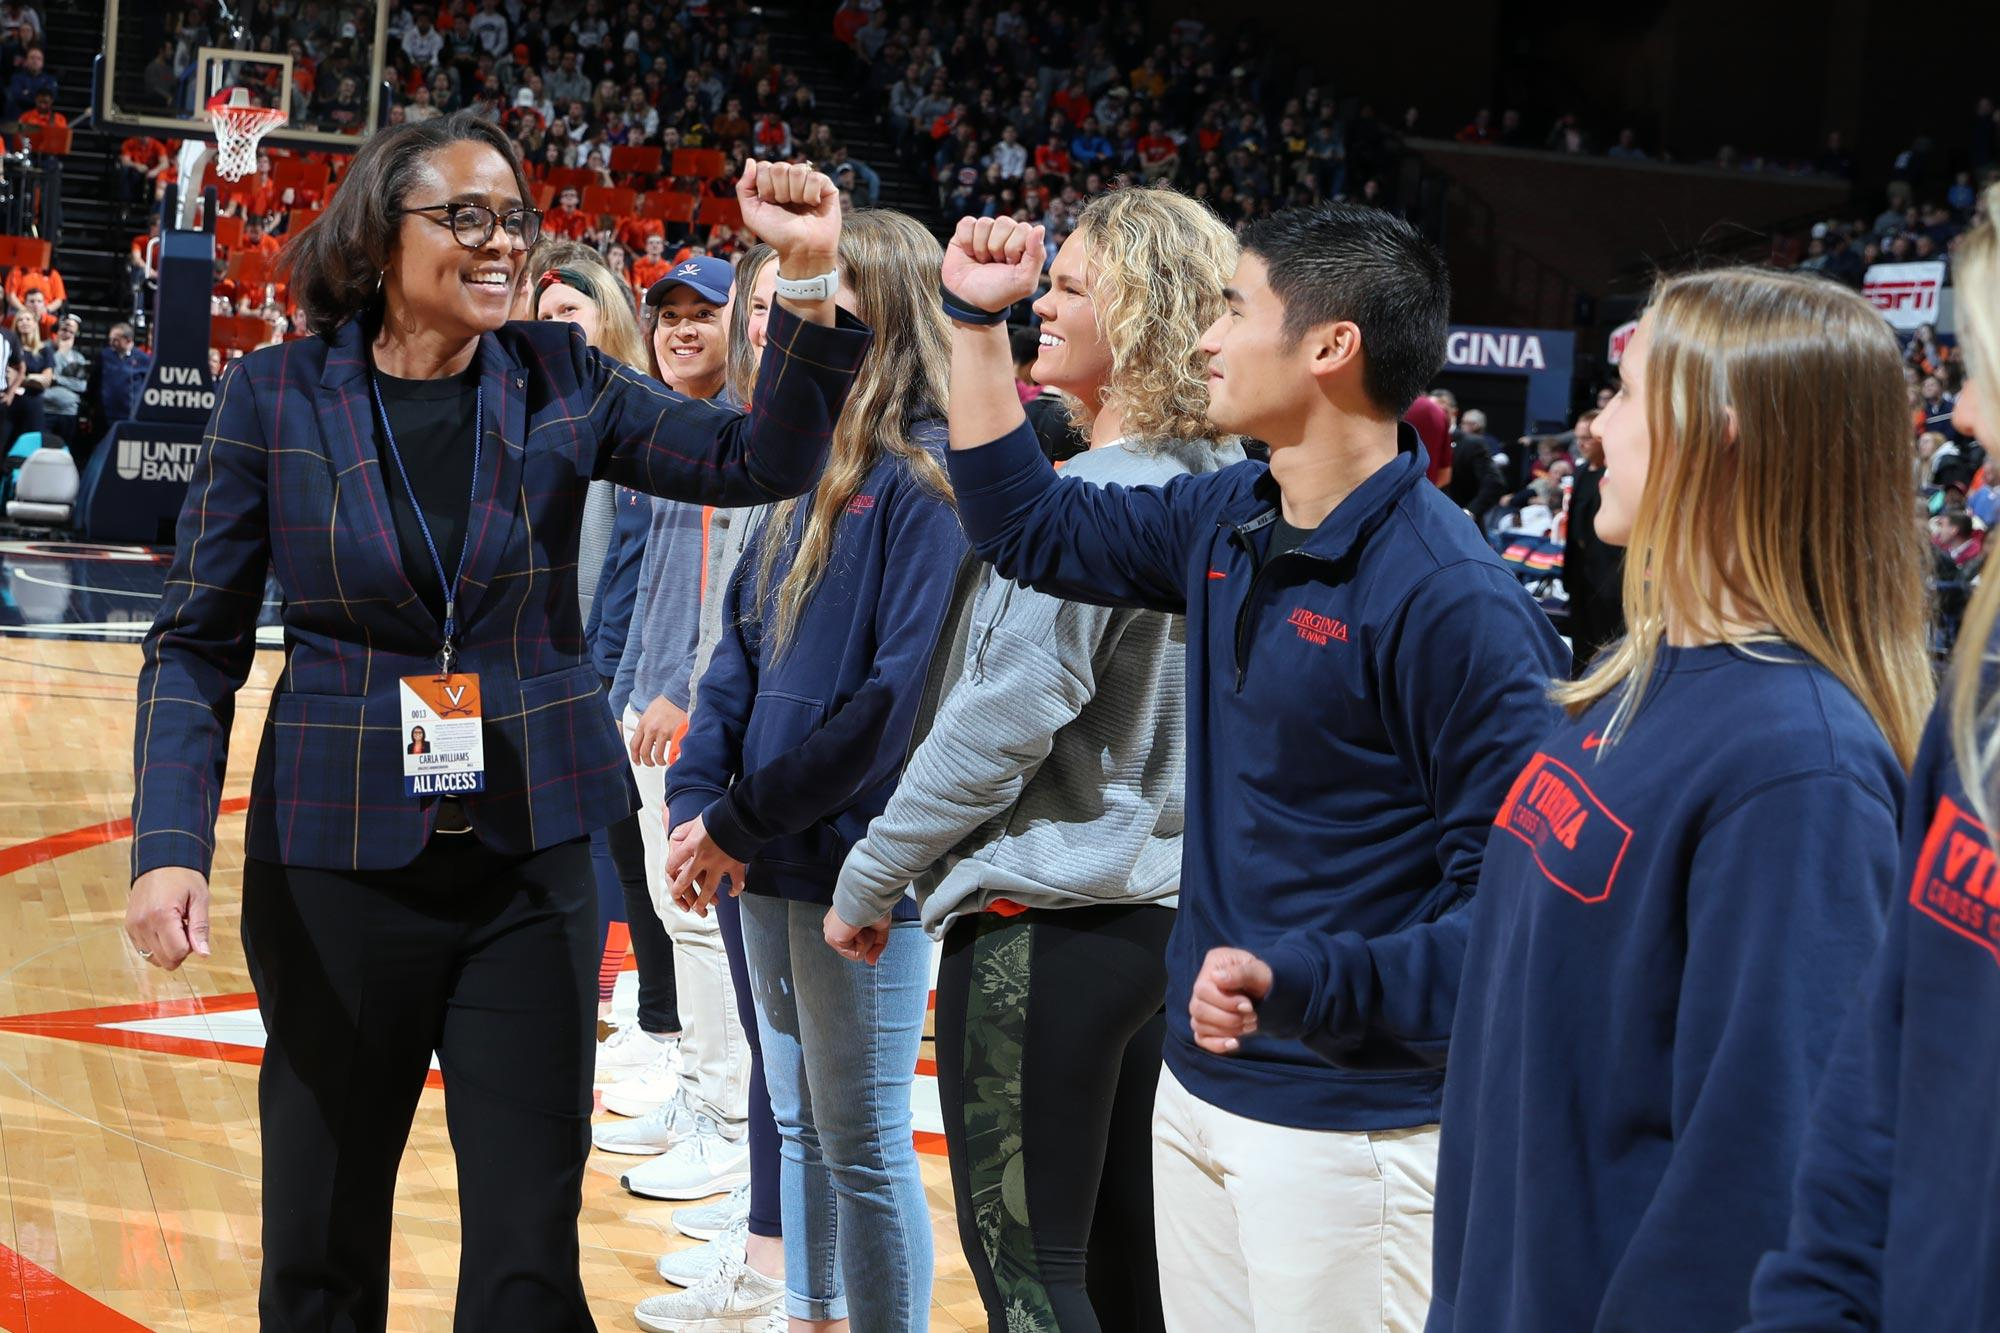 It's been a banner year in the classroom for UVA's student-athletes, who were honored Tuesday during the men's basketball victory over Florida State.